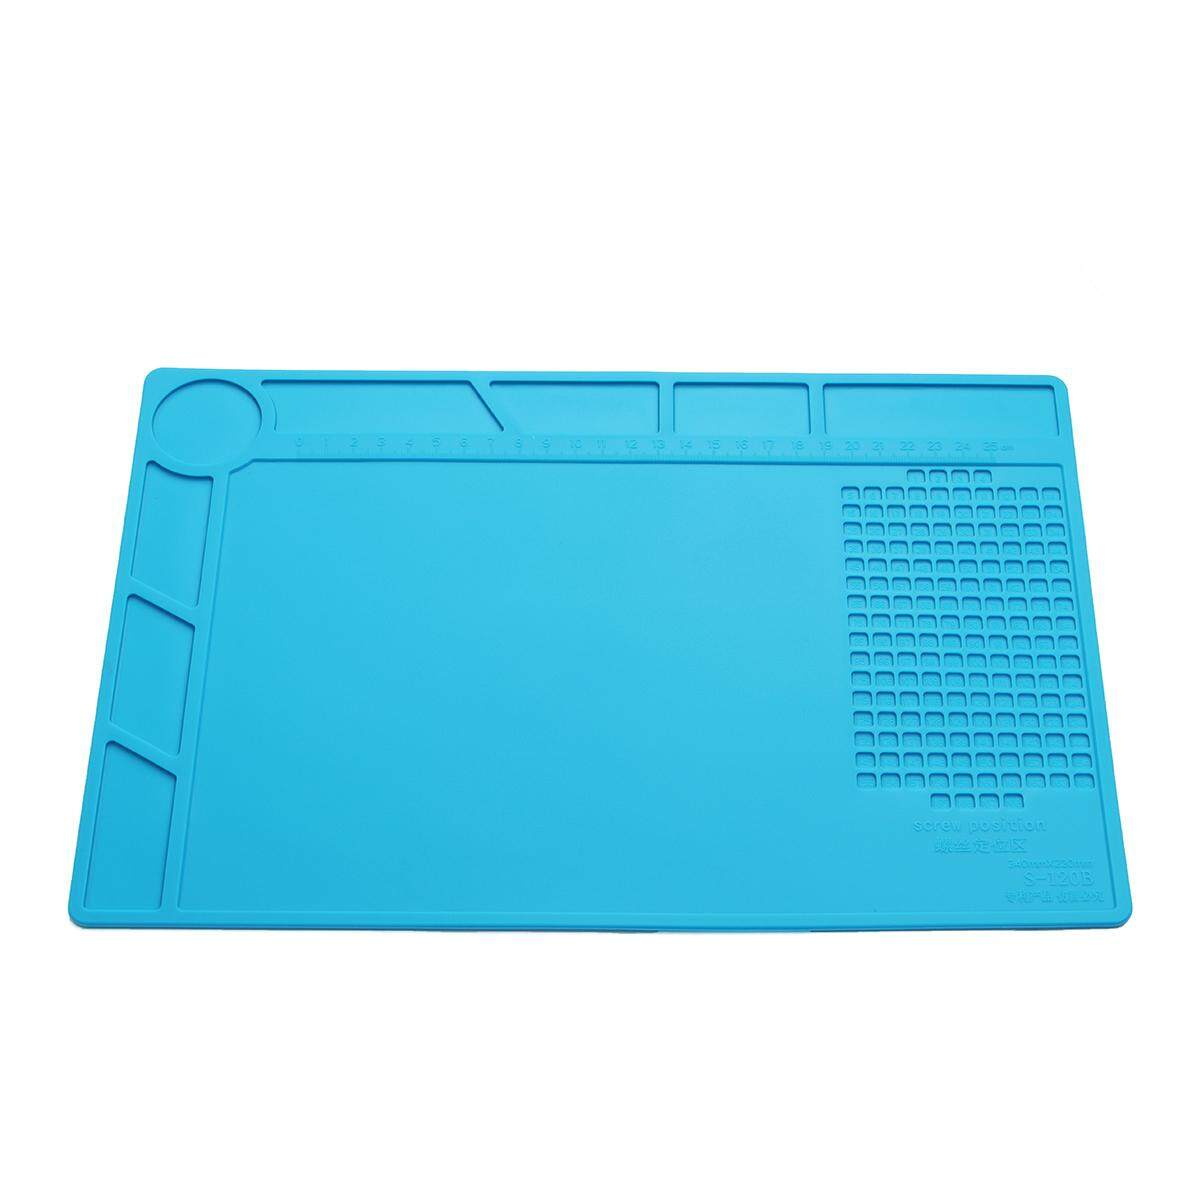 14x9inch Anti Static Heat Insulation Silicone Desk Mat For Phone Computer Repair Malaysia